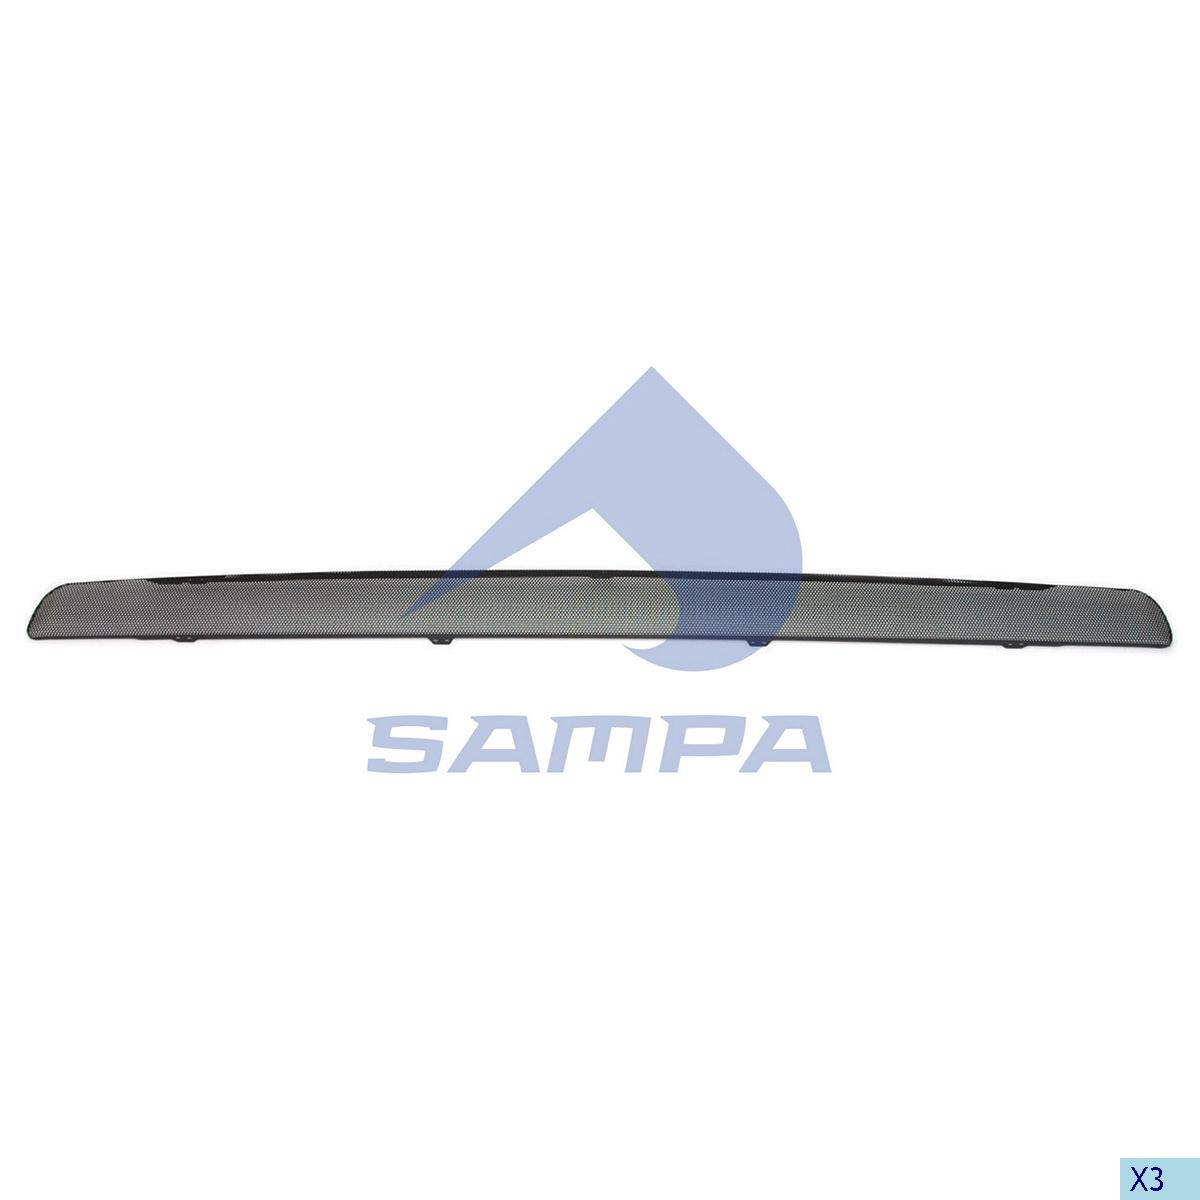 Trim Strip, Front Panel, Scania, Cab